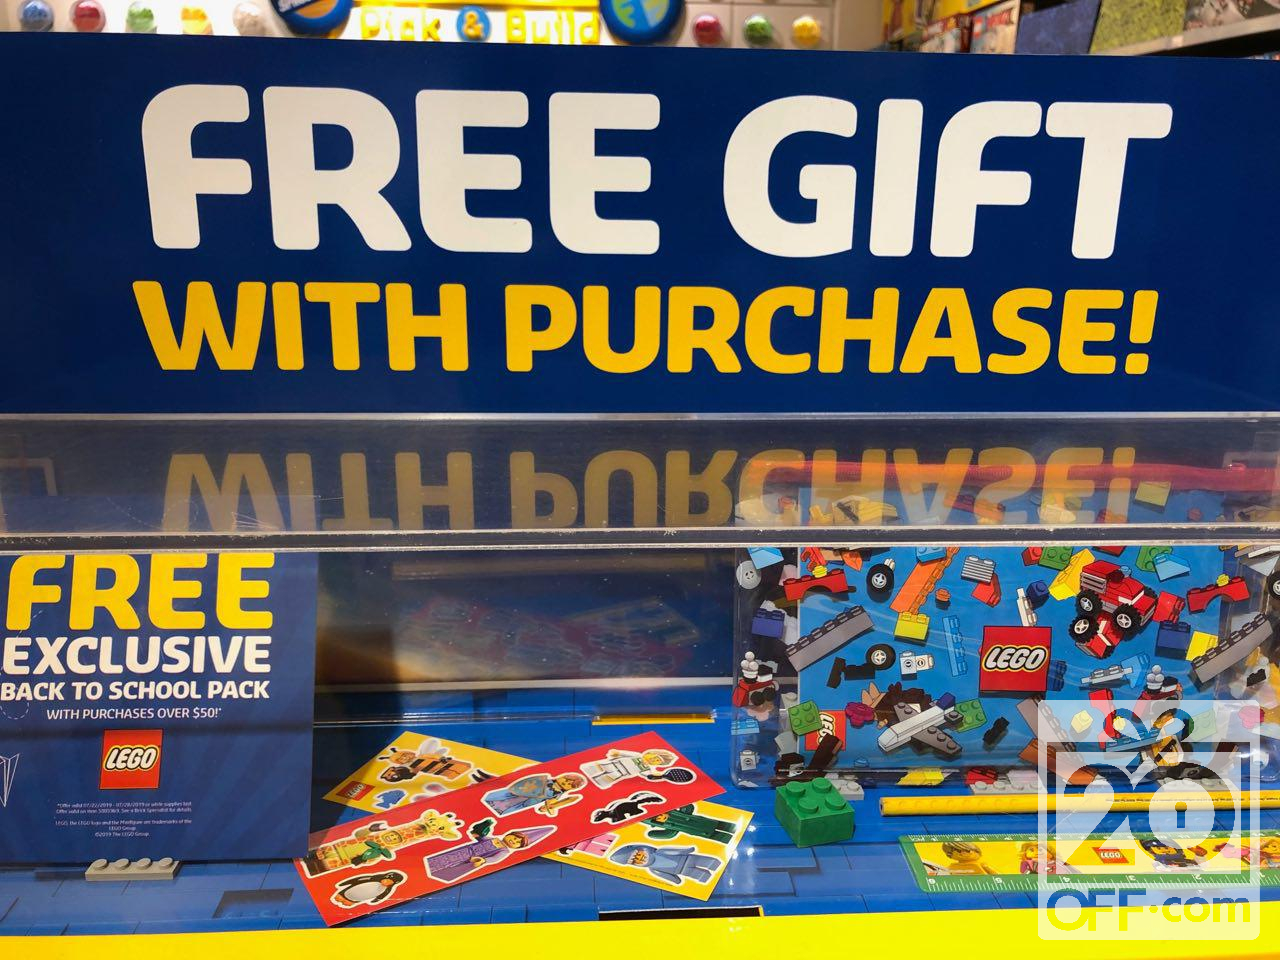 LEGO Free Gift with Purchase Back-to-school